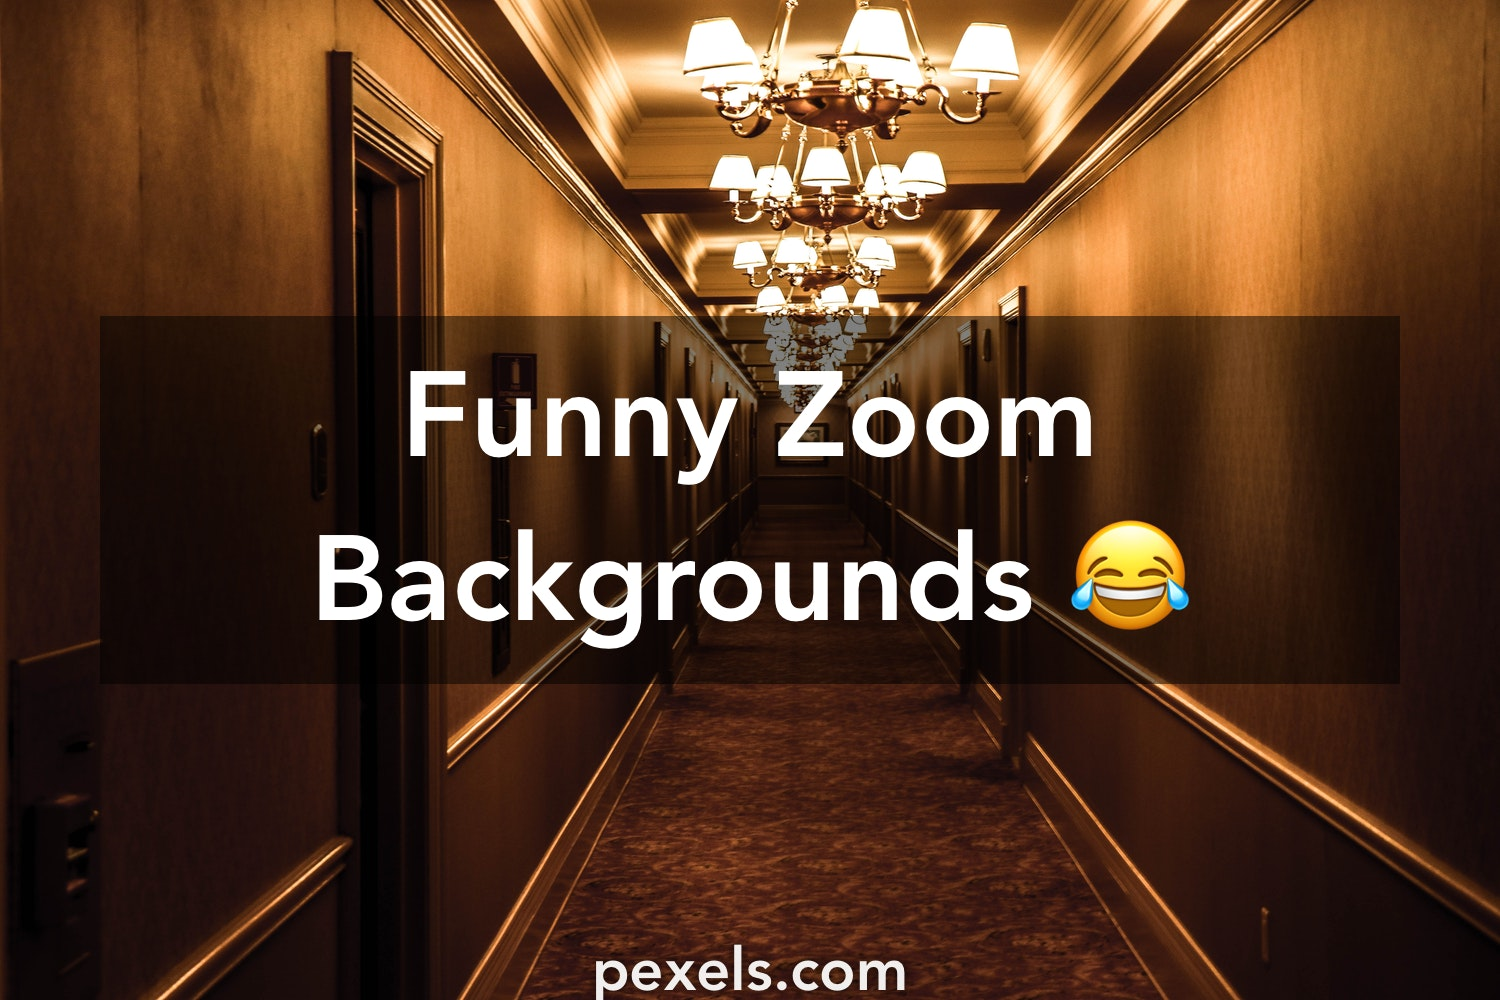 Funny Zoom Backgrounds Pexels